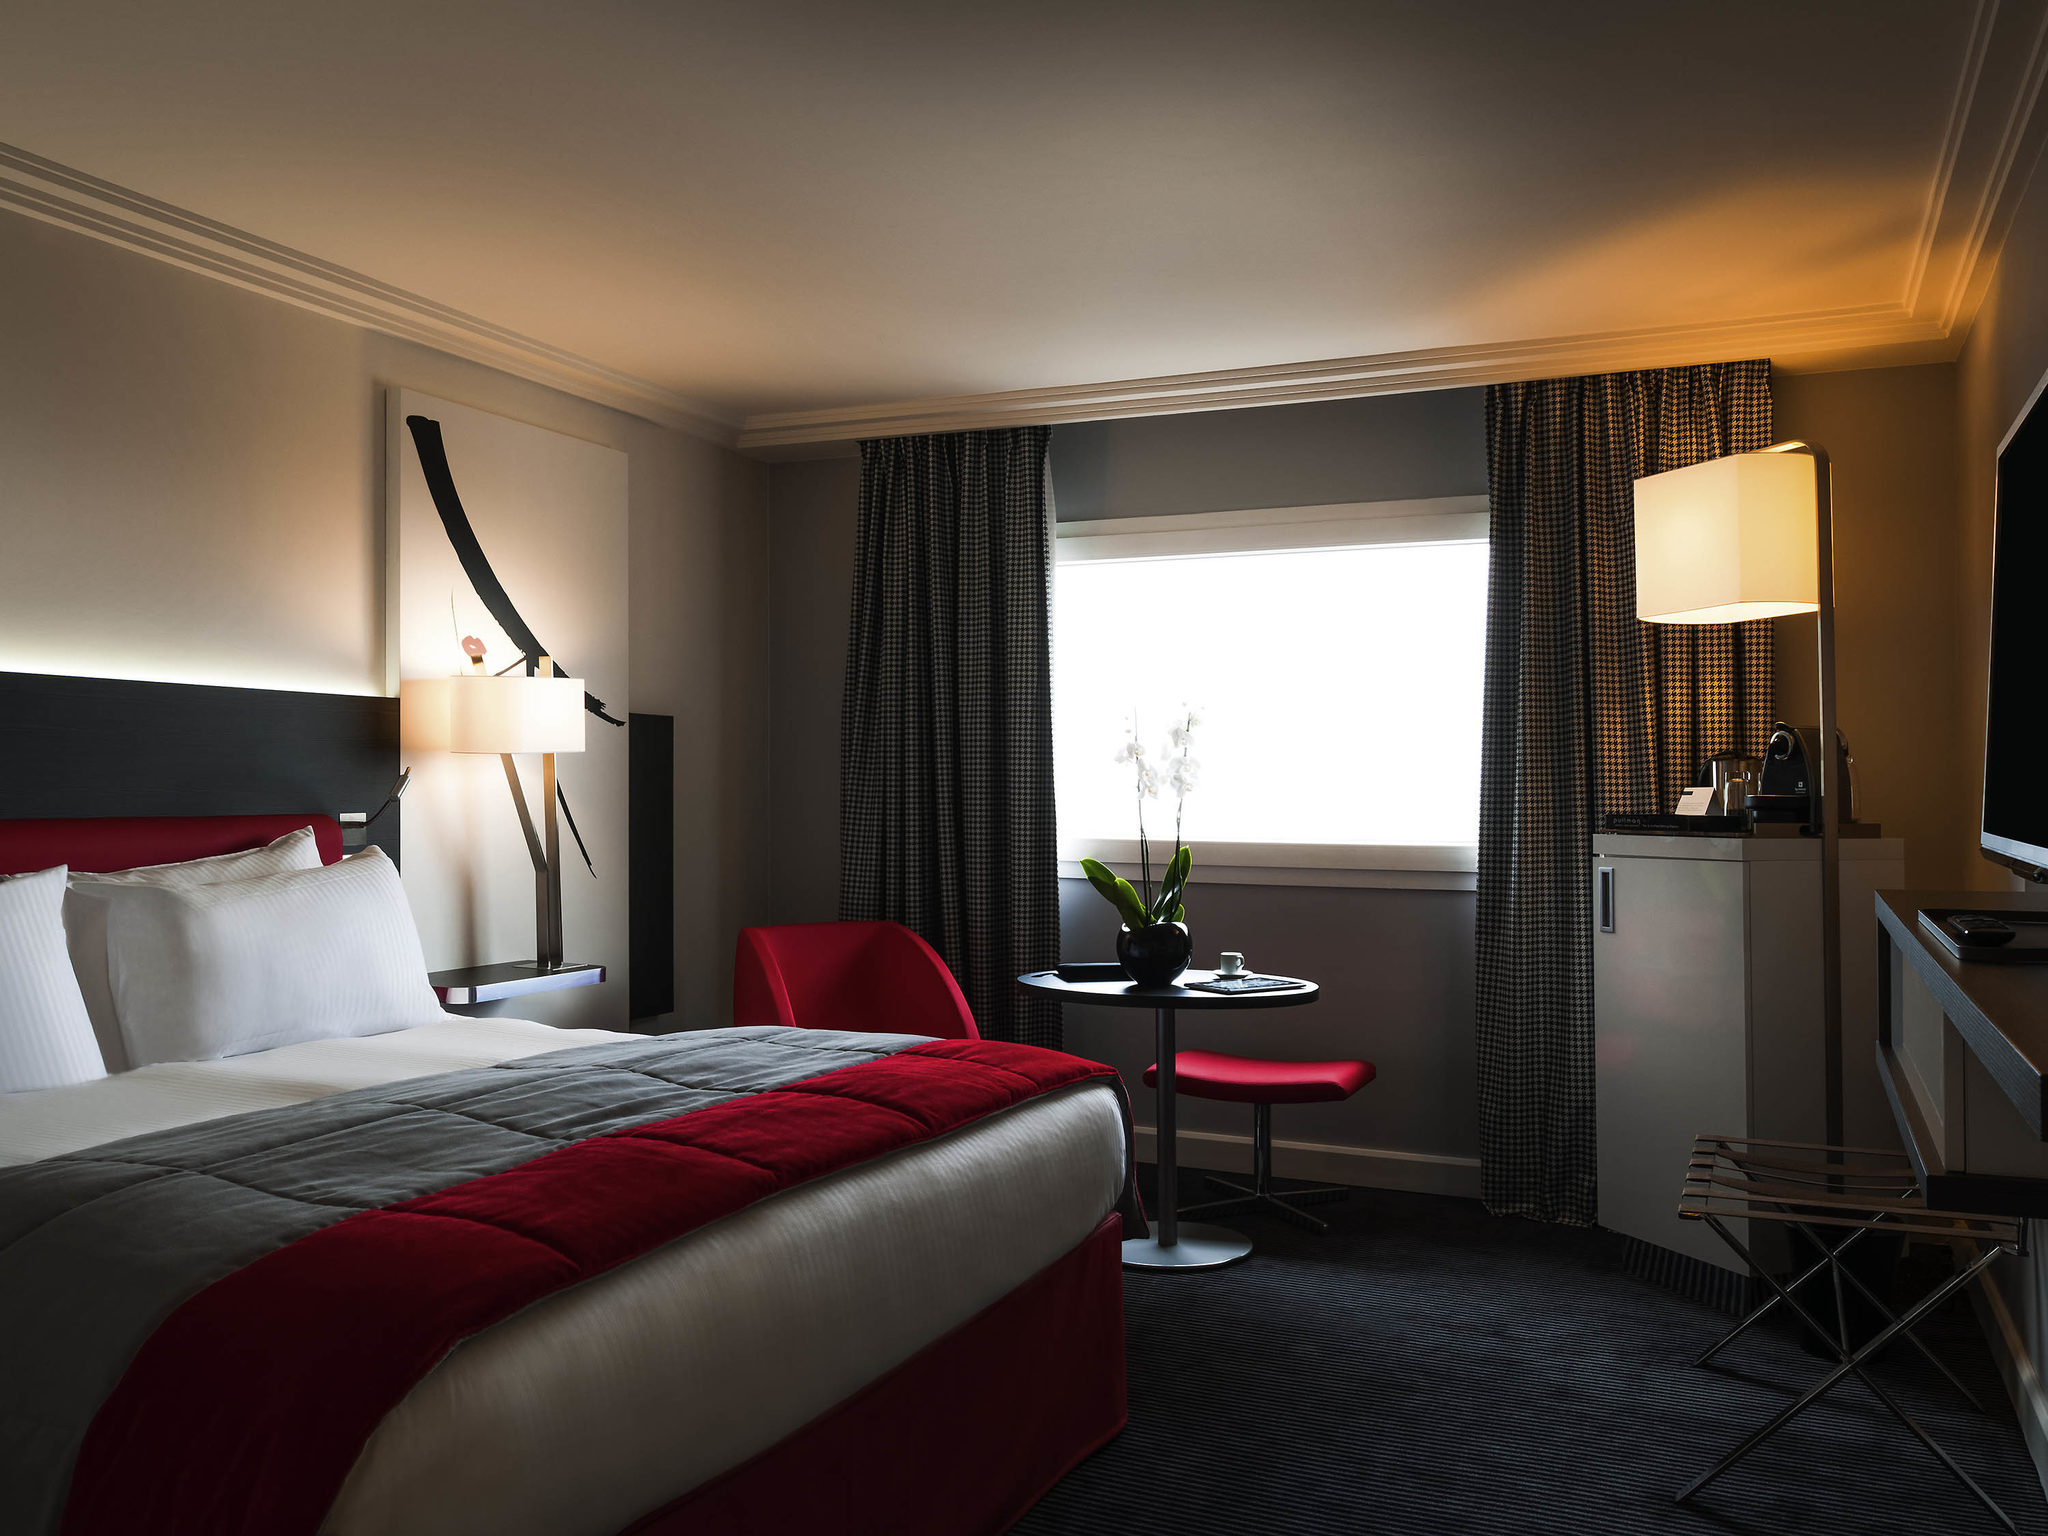 Airport Bed Hotel Hotel In Roissy Cdg Cedex Mercure Paris Cdg Airport Convention